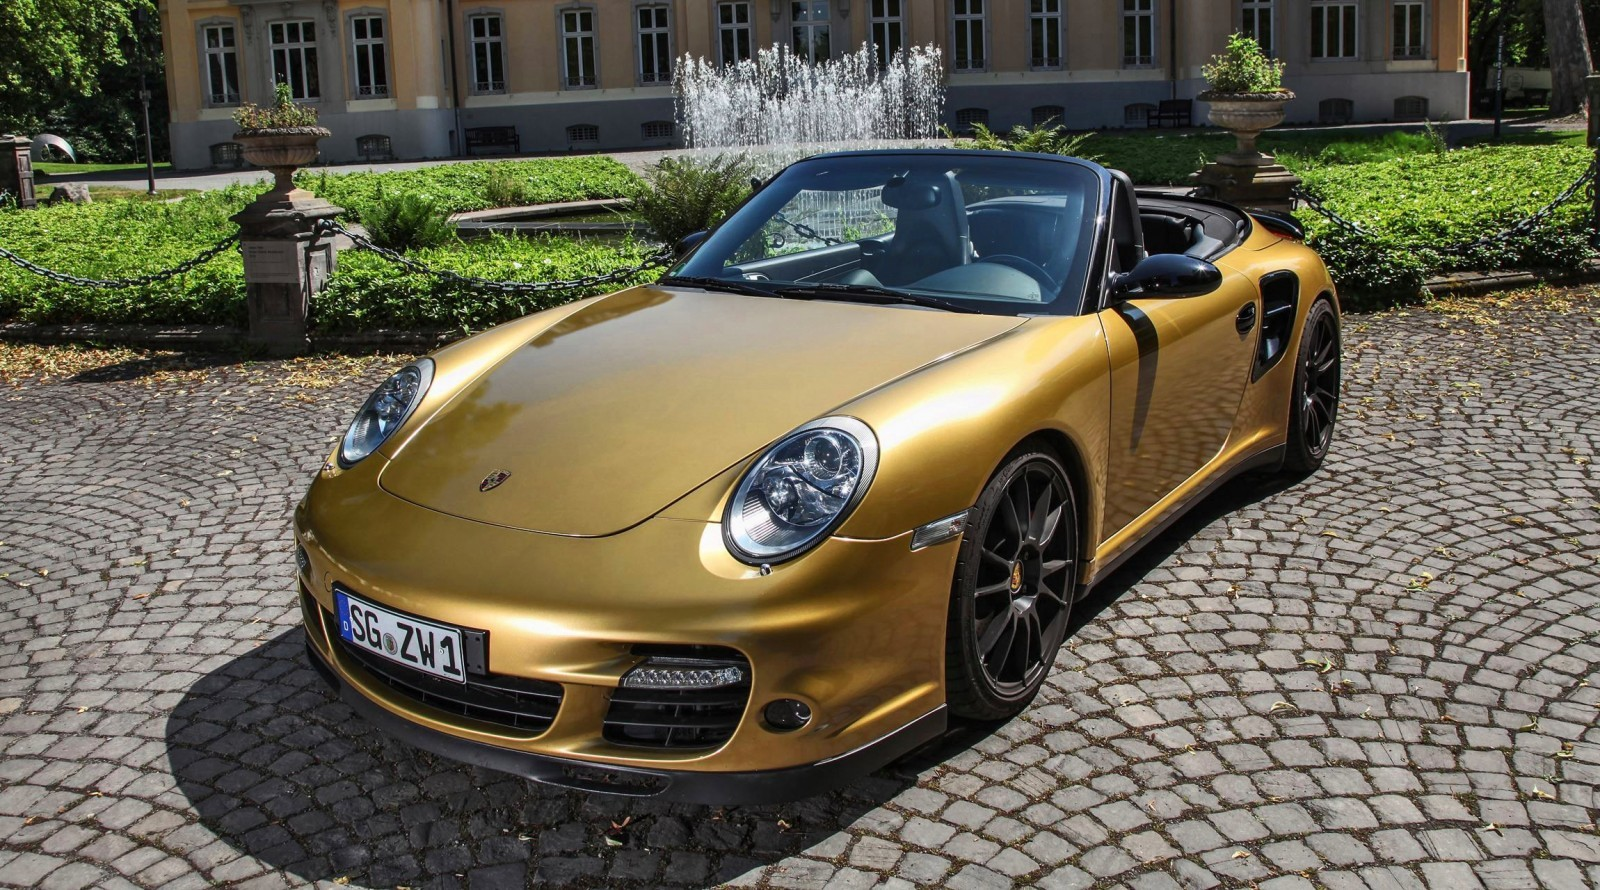 black gold 840hp 226mph porsche 911 turbo cabrio by. Black Bedroom Furniture Sets. Home Design Ideas